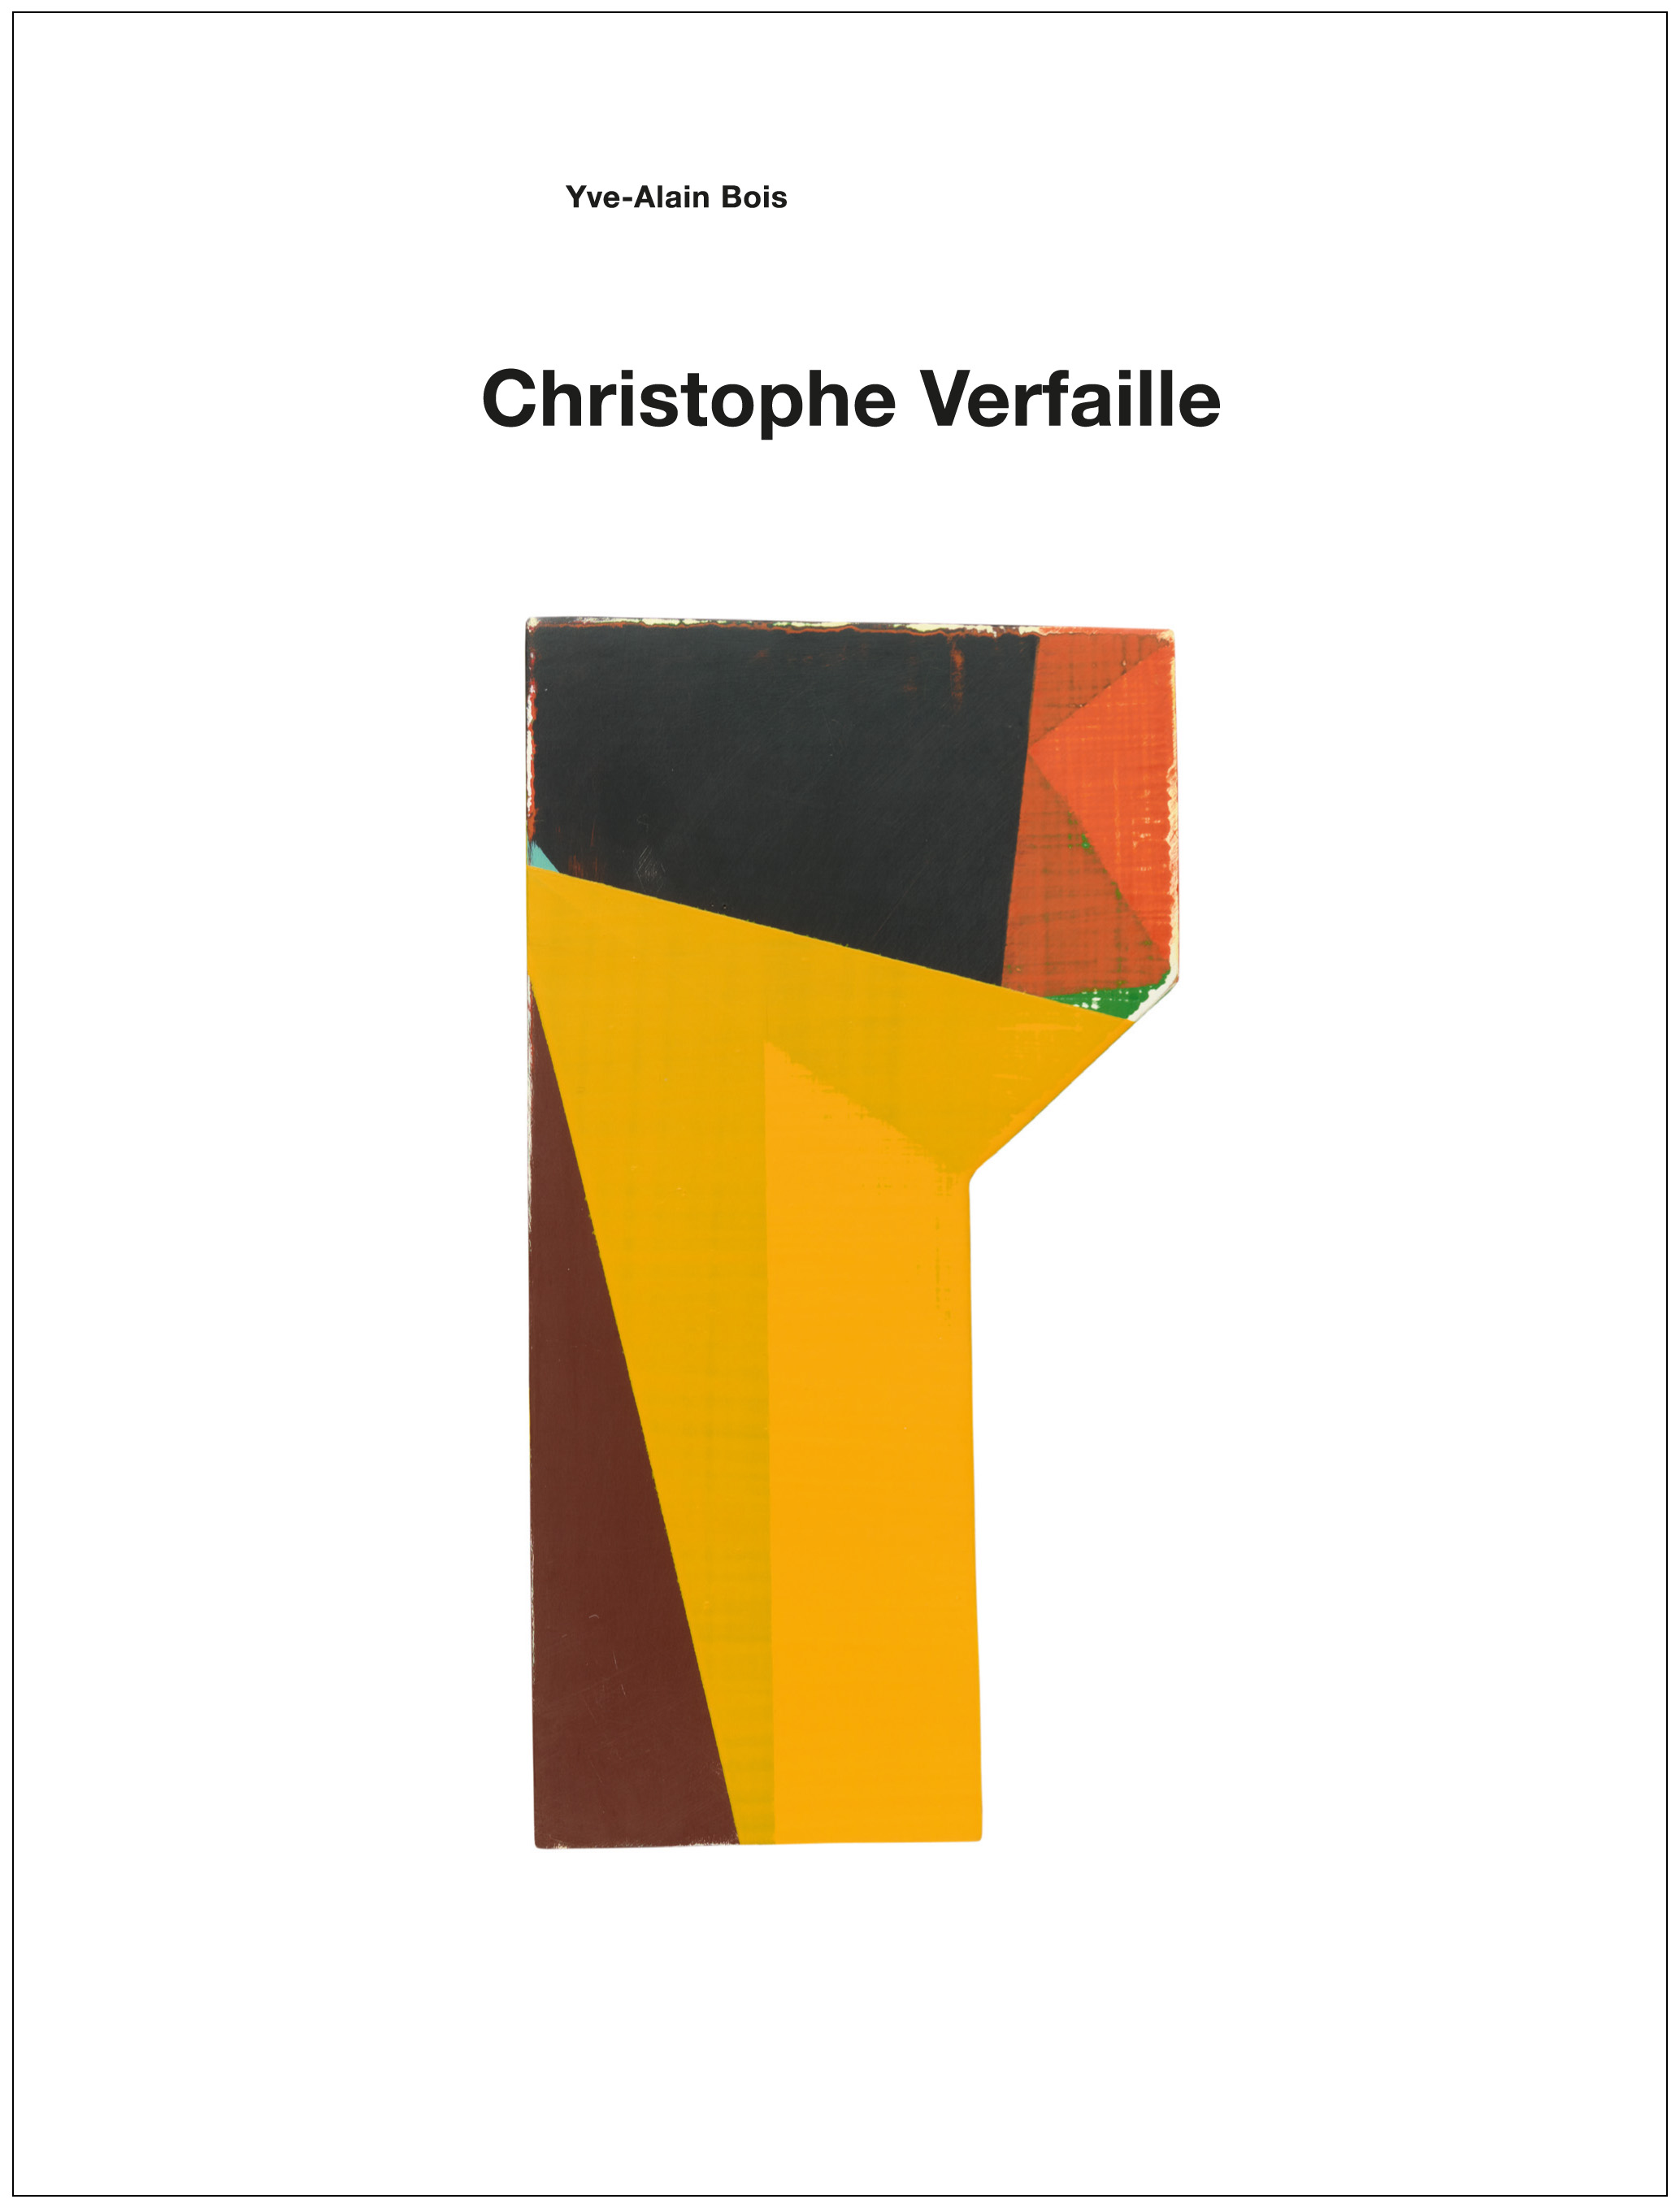 "Yve-Alain Bois – ""Christophe Verfaille"" 2014, 64 pages, fully illustrated, Owrps, 23 x 17,5 cm Edition 800 Euro 20,- – First monograph on the artist Christophe Verfaille (1953-2011) with a new essay by Yve-Alain Bois both in English and German."